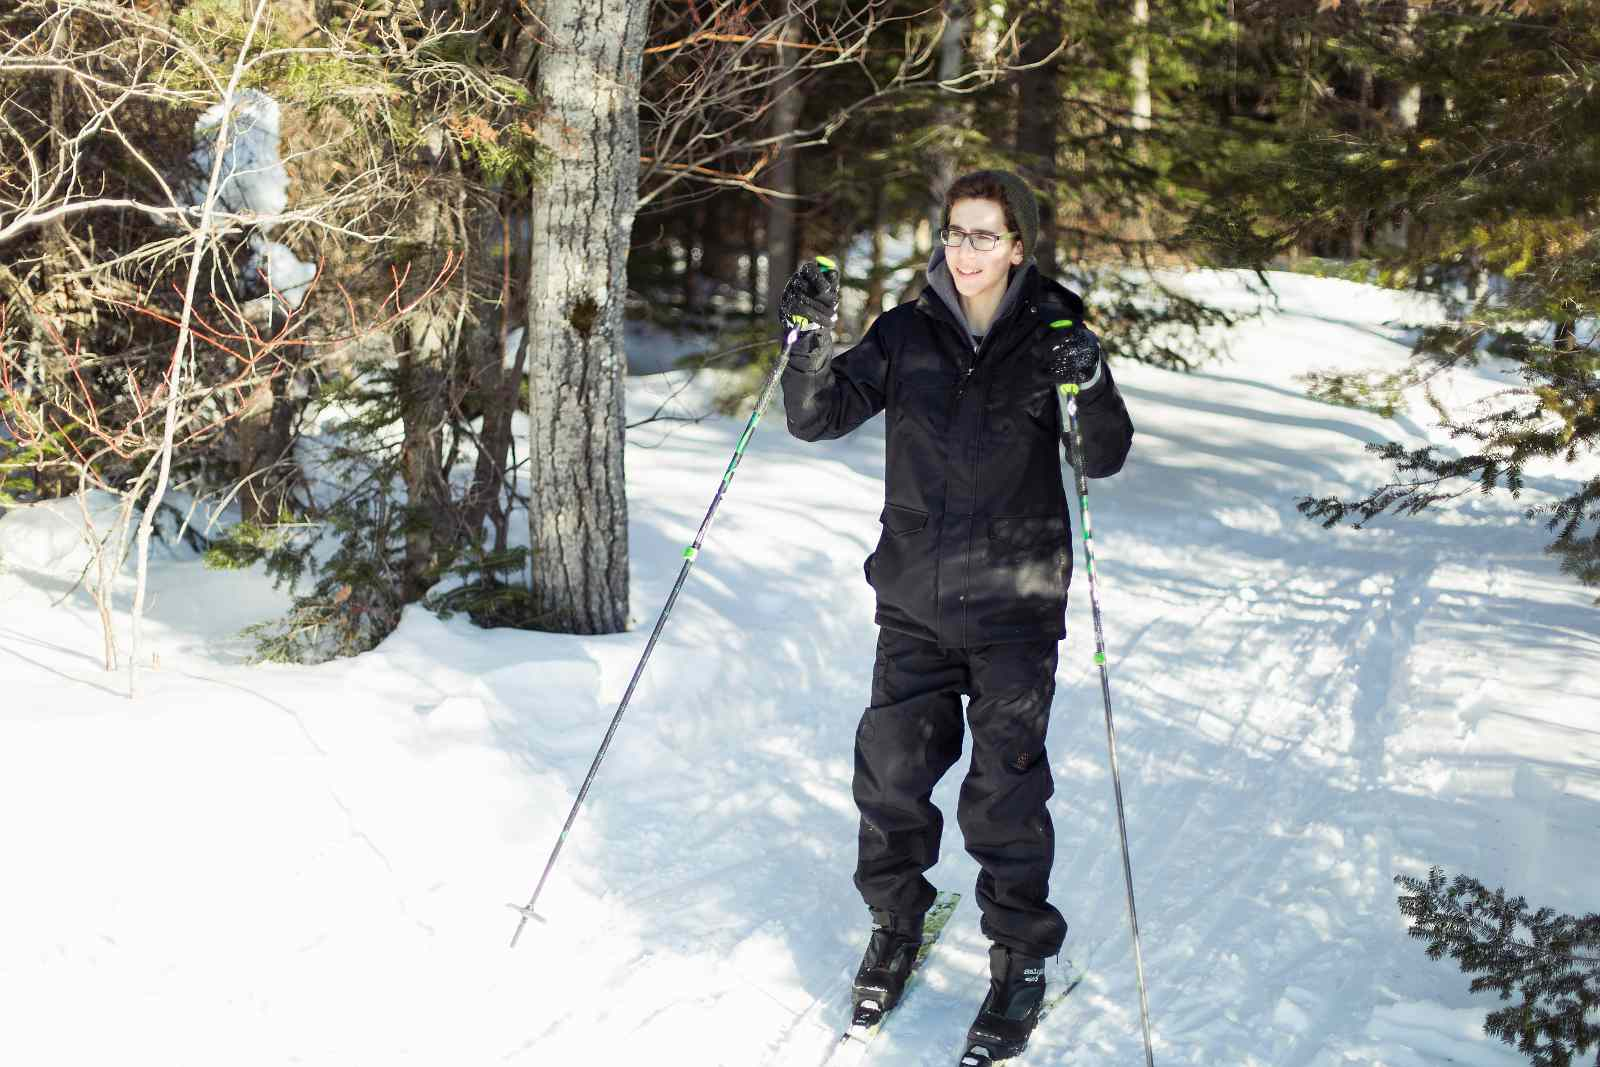 Montreal fitness options include these winter sports.